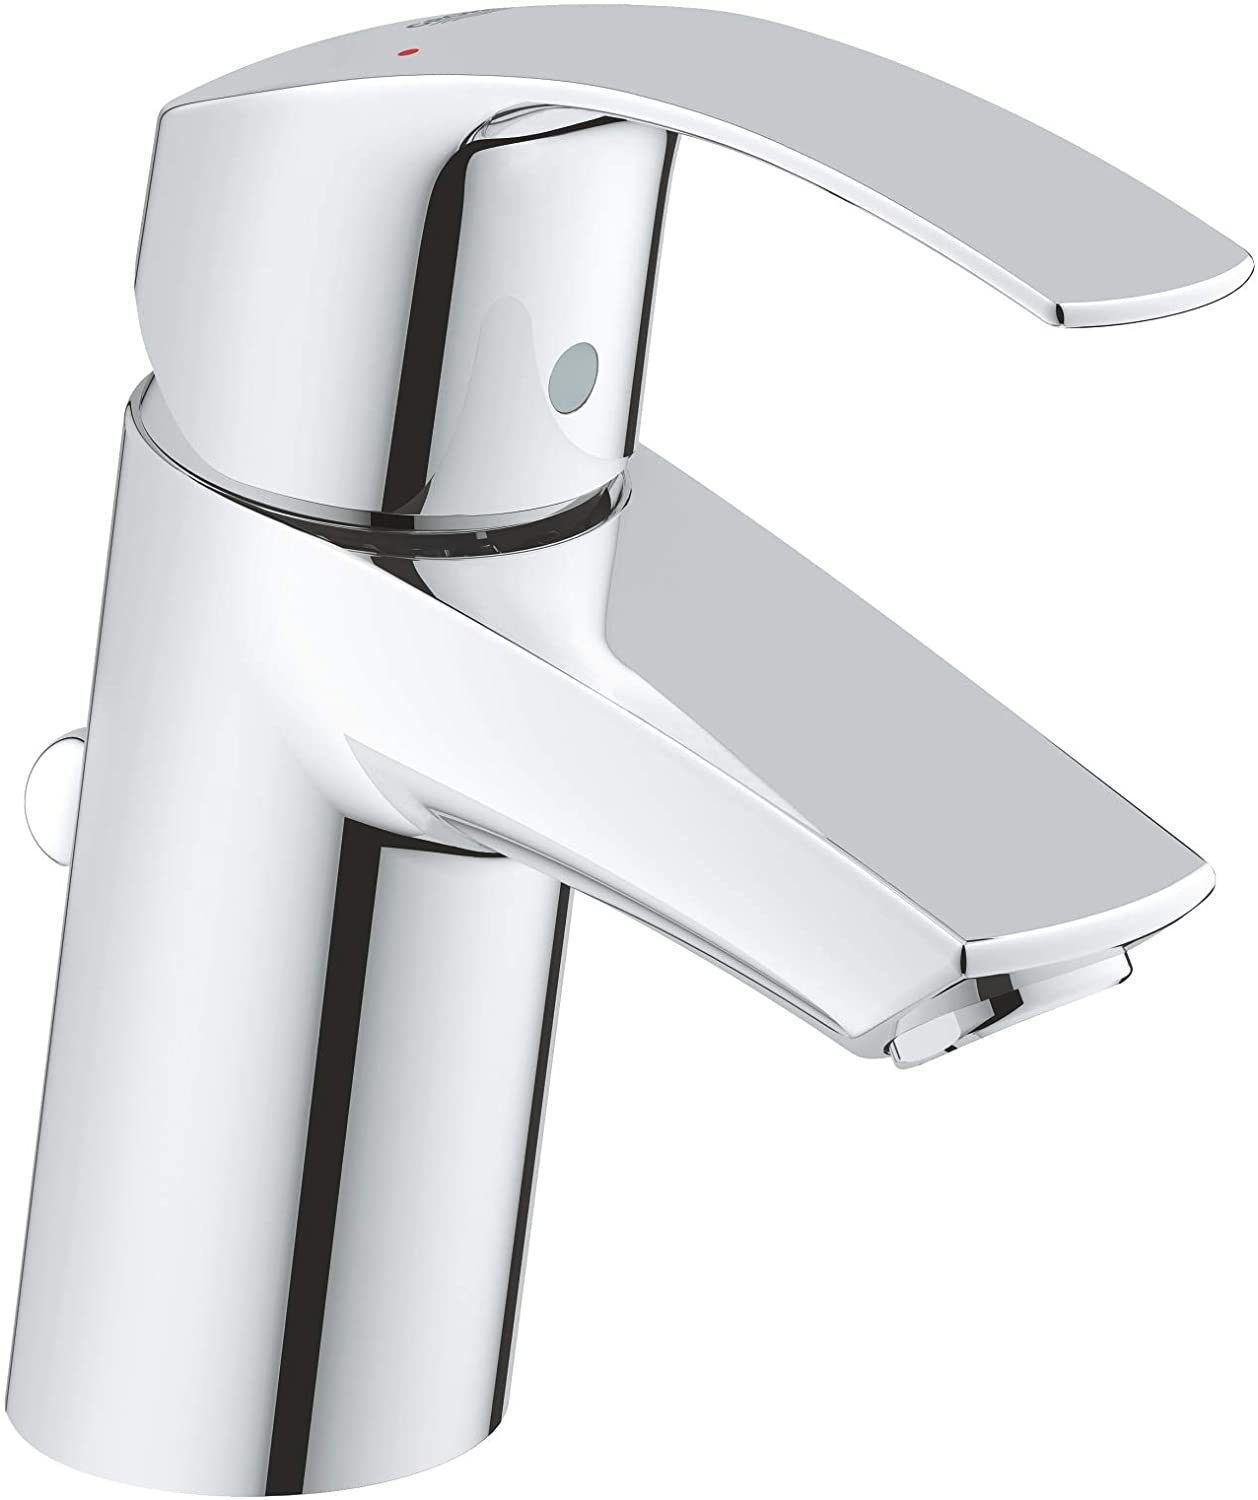 GROHE Eurosmart single-lever basin tap with pop-up waste, plug, one handle basin mixer tap, bathroom, regular spout, water-saving, easy to clean, easy installation, chrome, 33265002